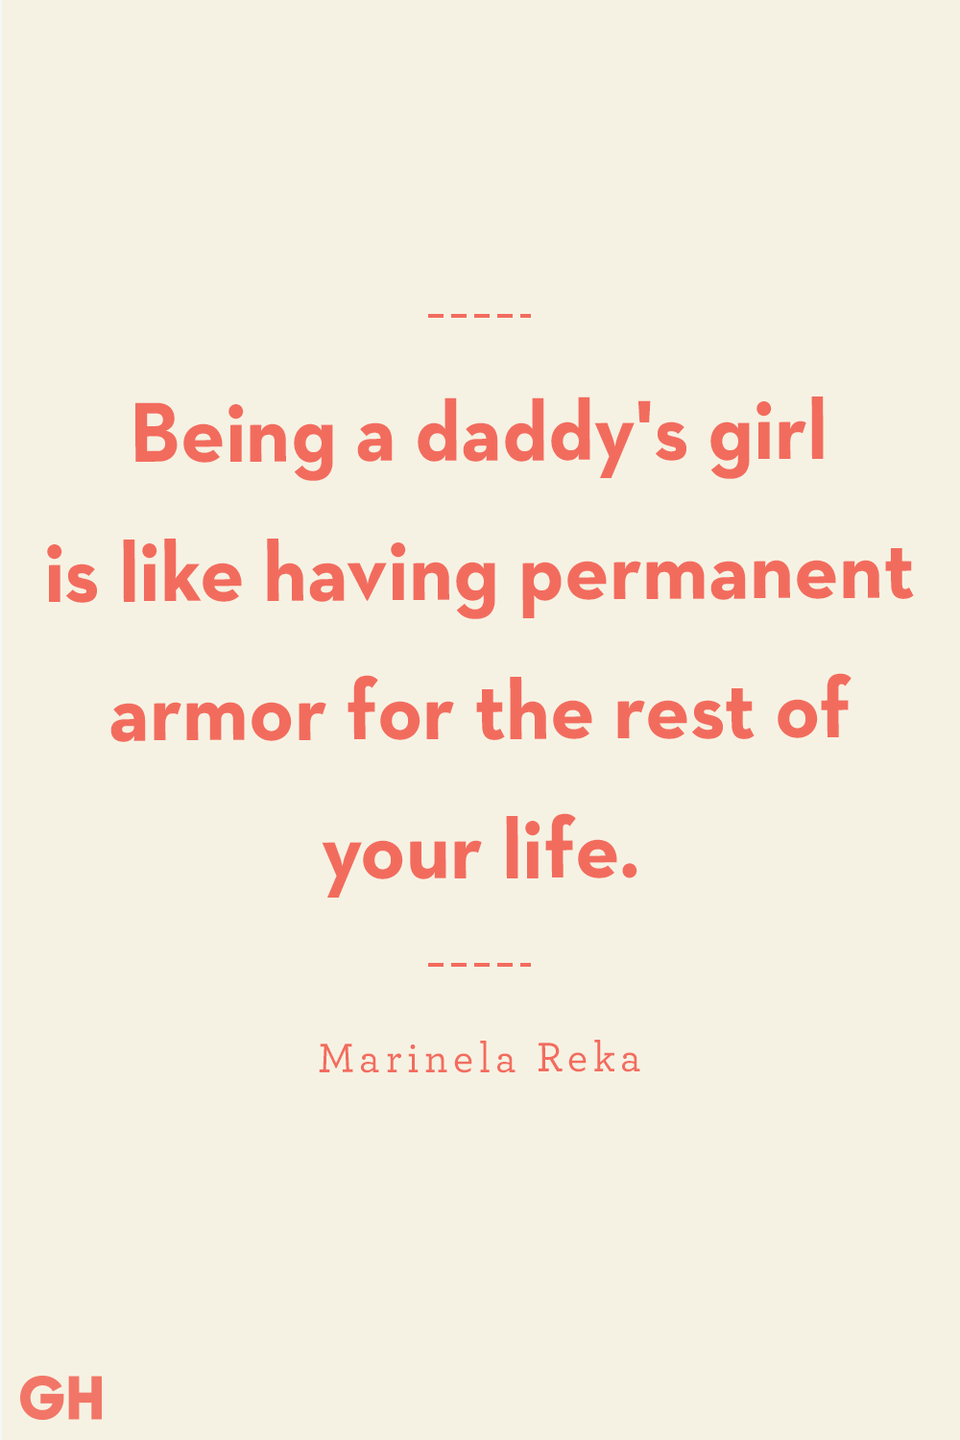 <p>Being a daddy's girl is like having permanent armor for the rest of your life.</p>